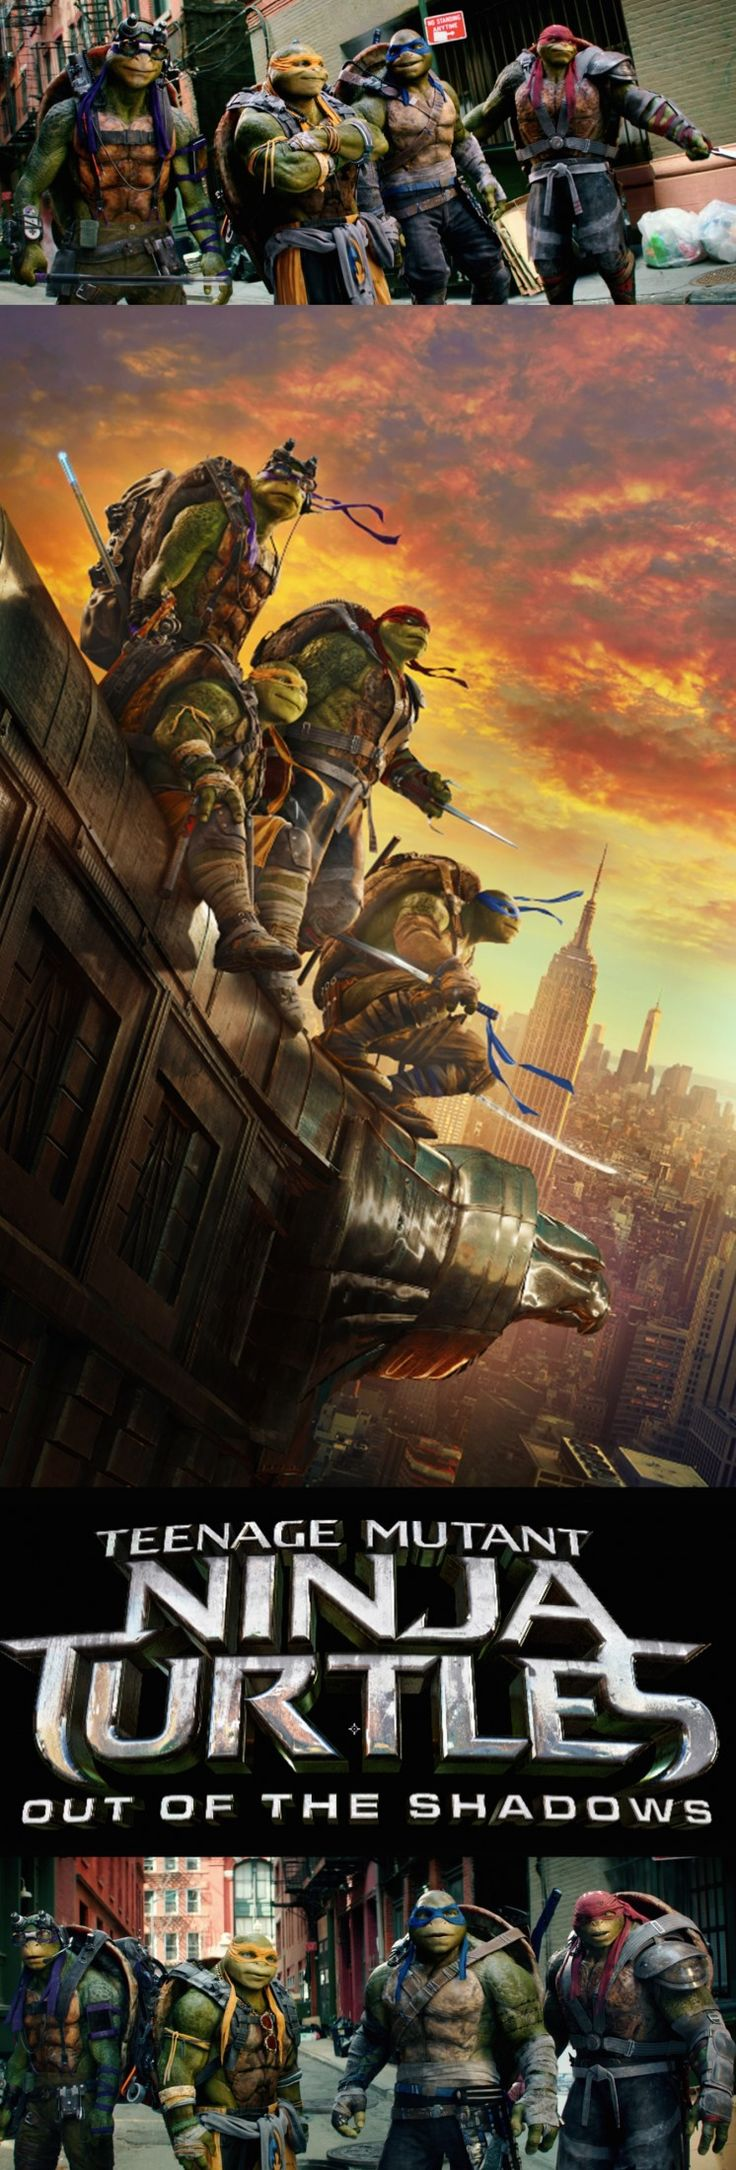 Get your tickets for the much anticipated Teenage Mutant Ninja Turtles: Out of the Shadows!